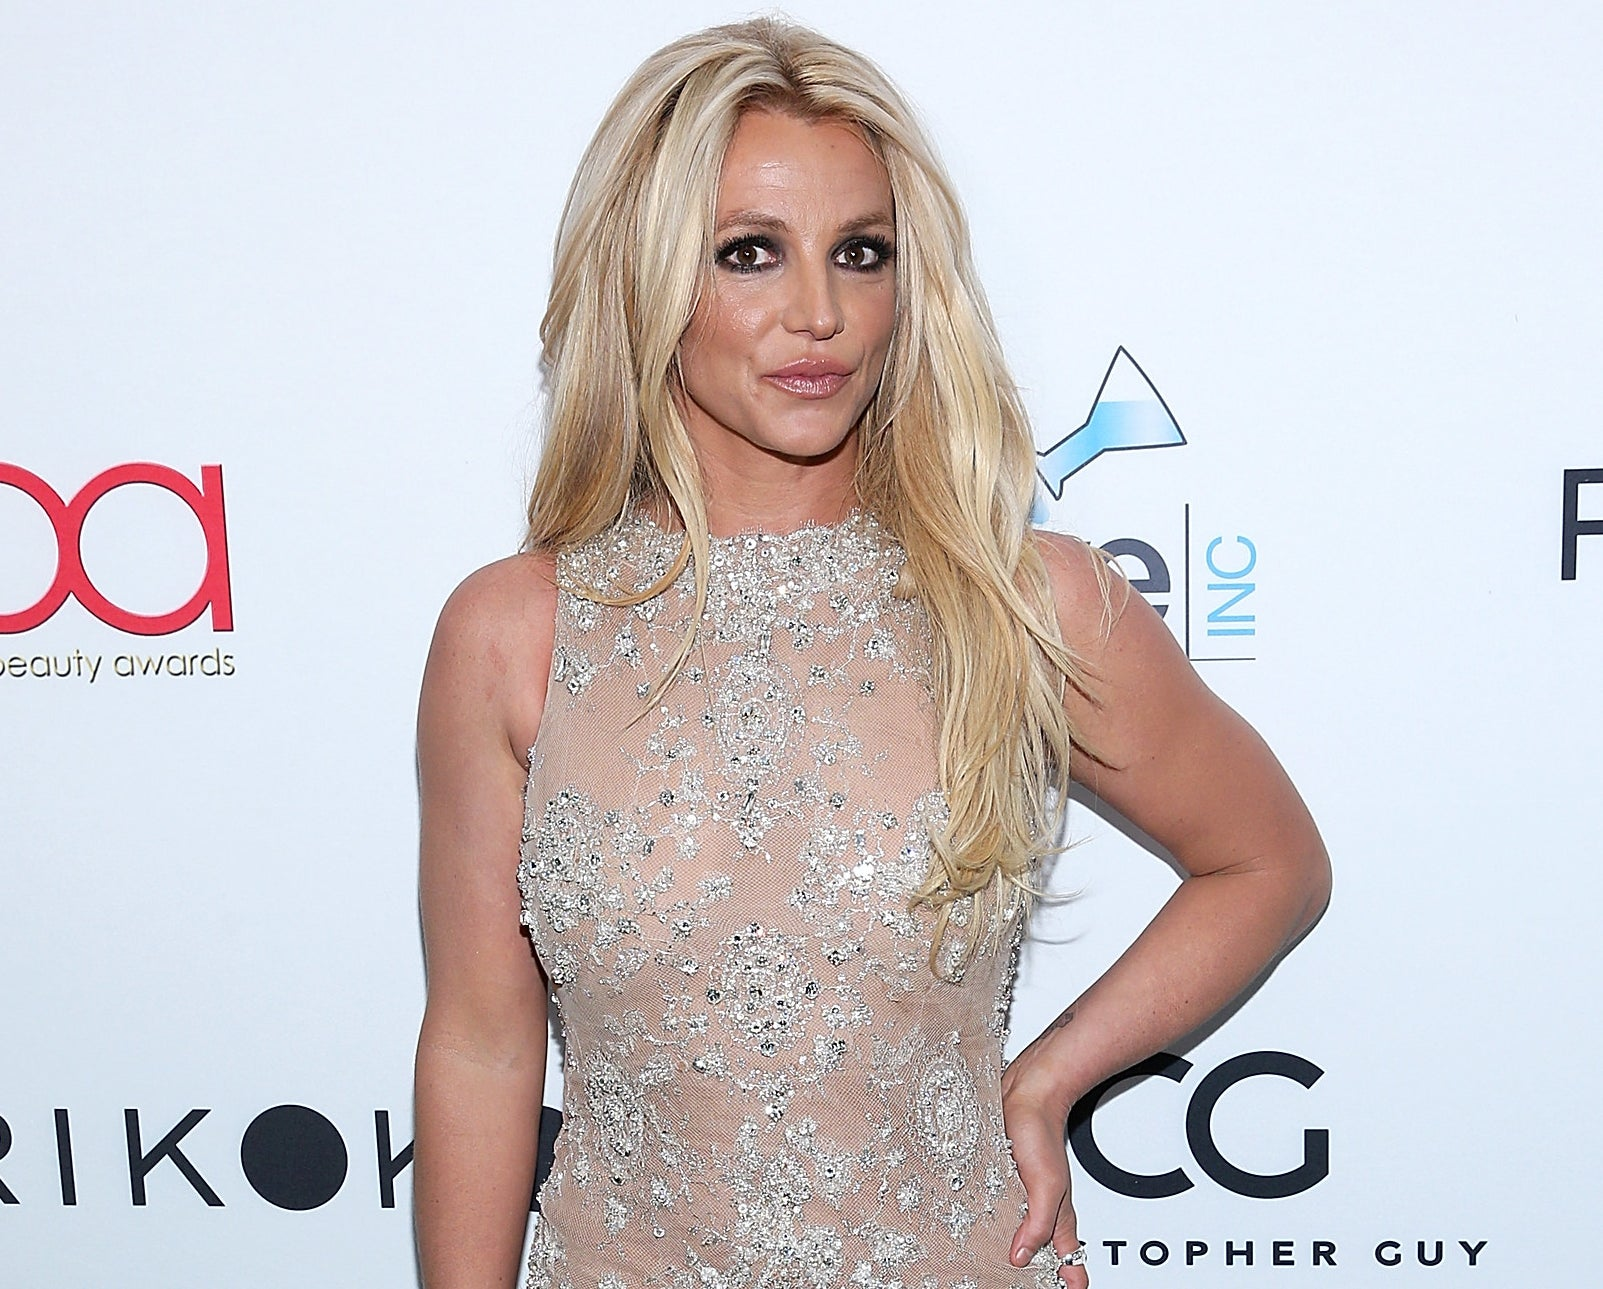 Britney wears a nude dress with diamonds while posing on a red carpet